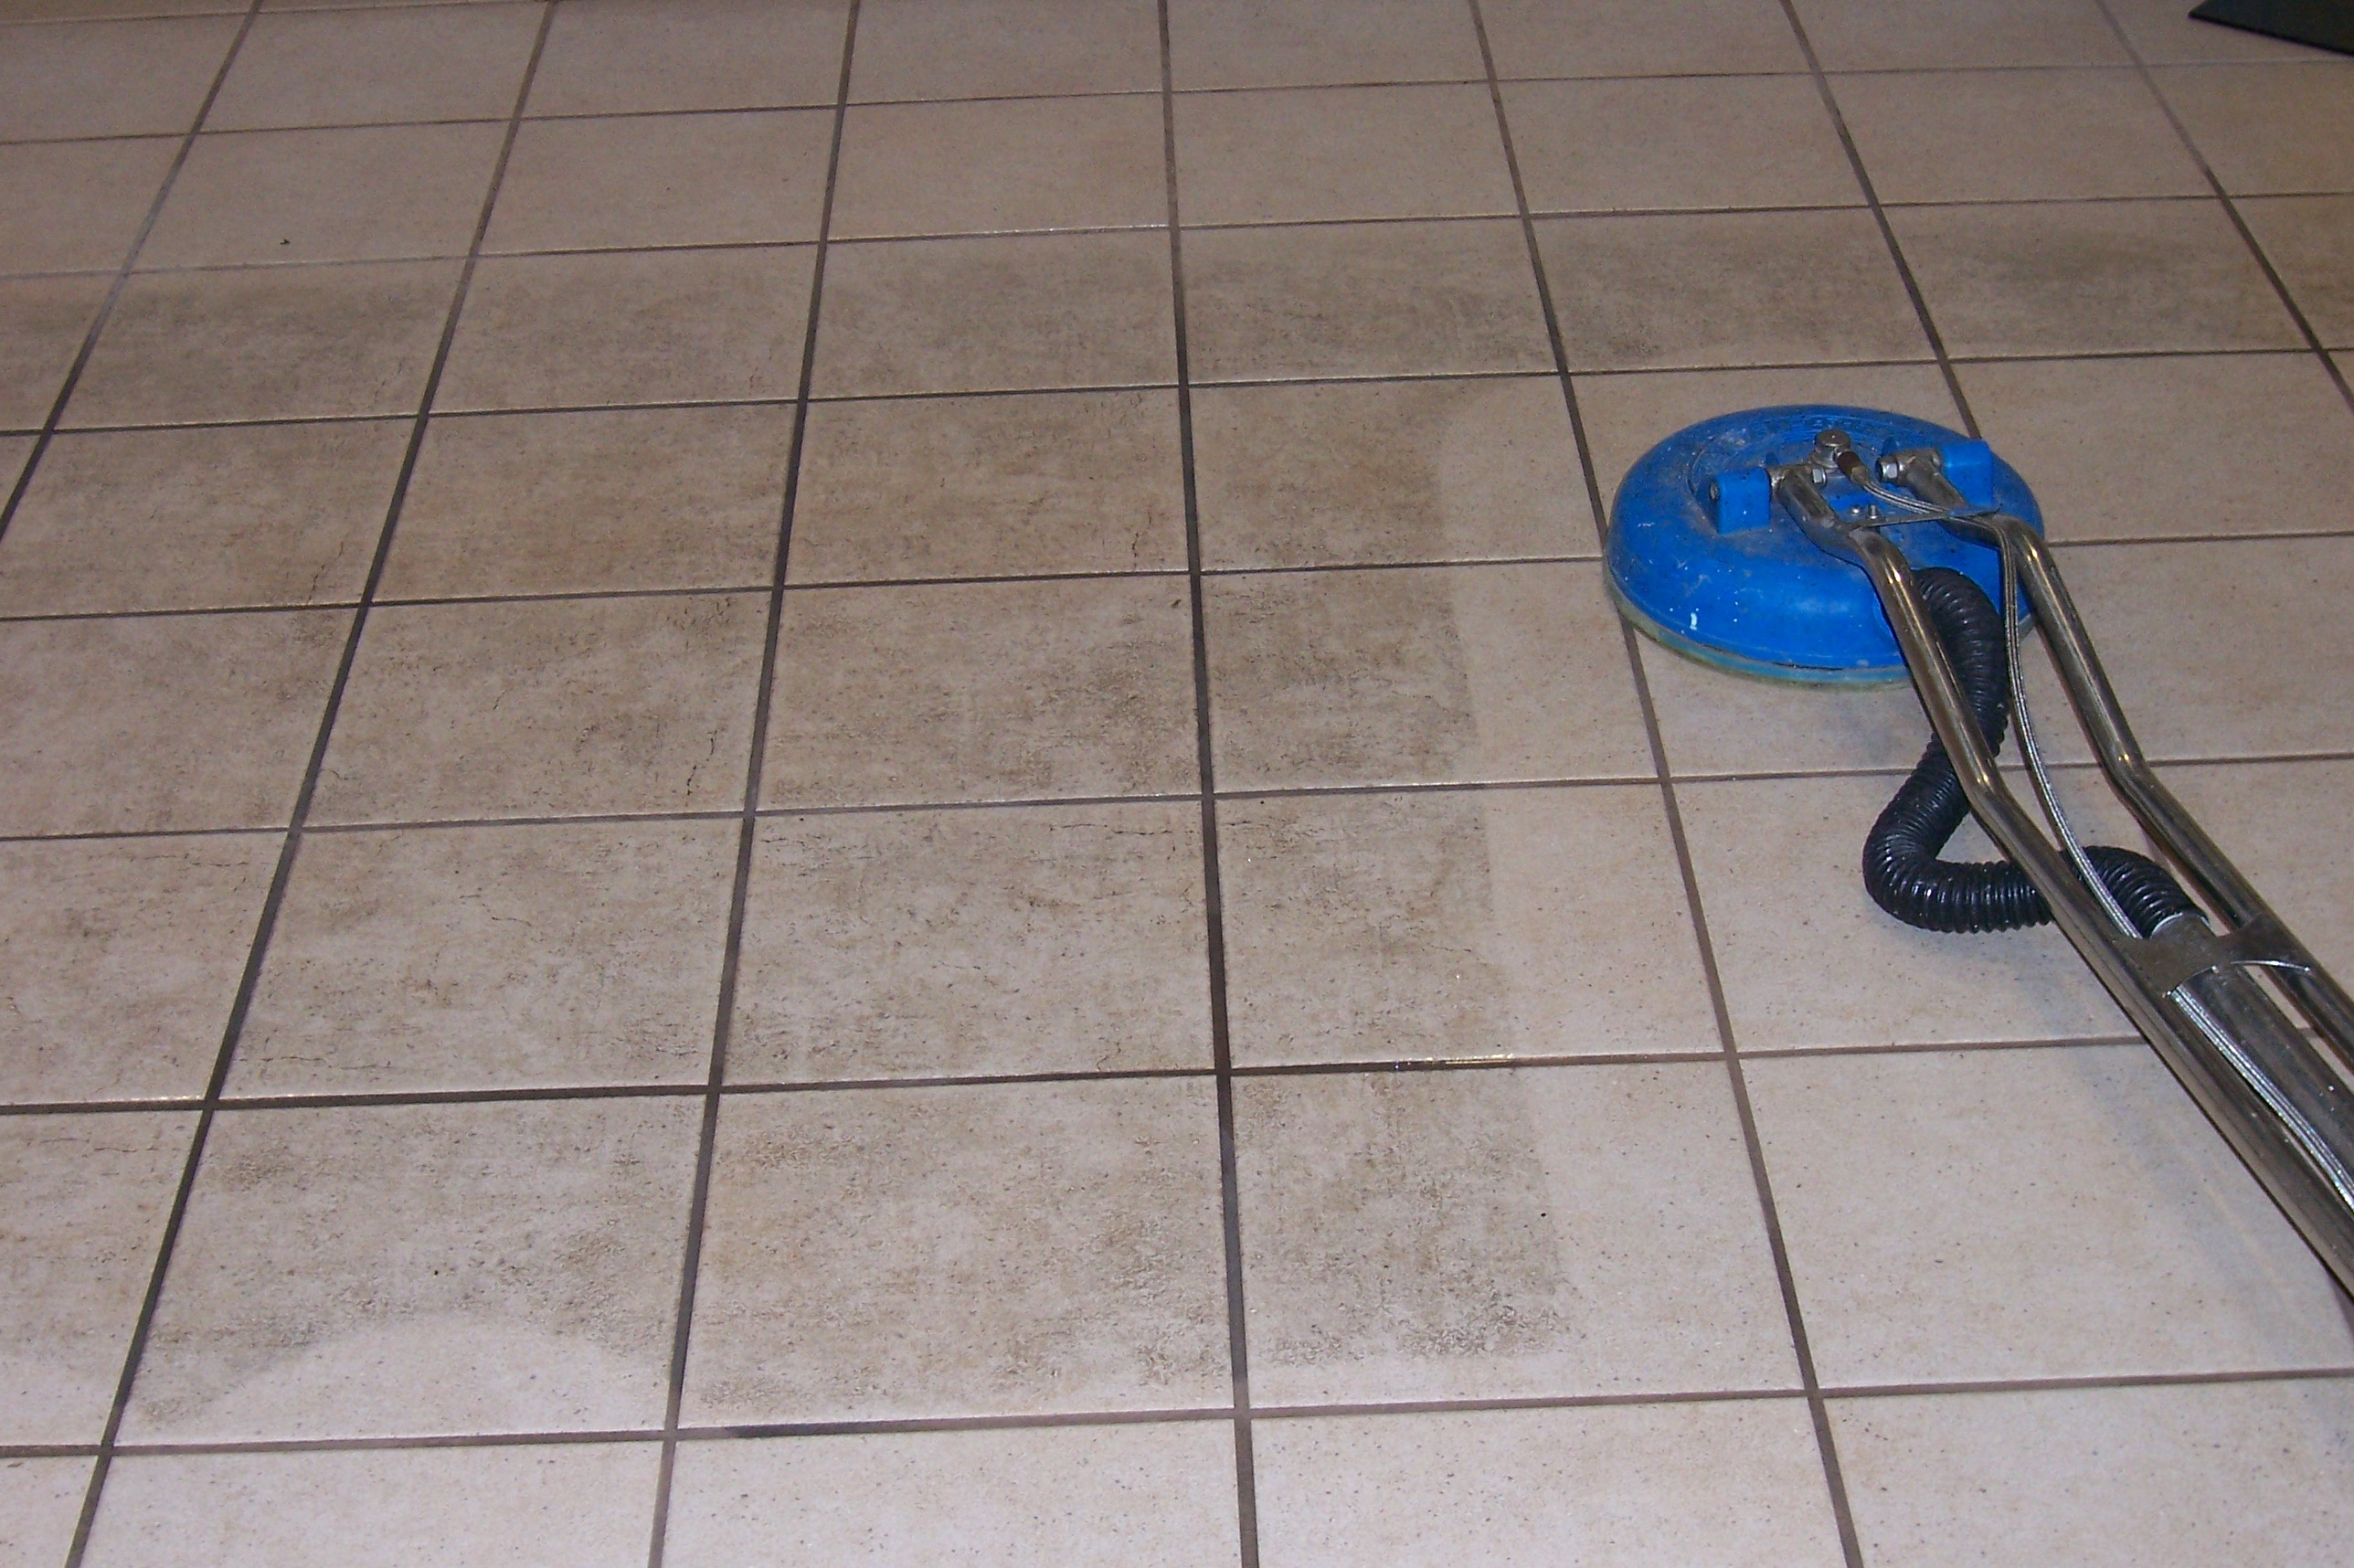 How to take care of your tile floor?